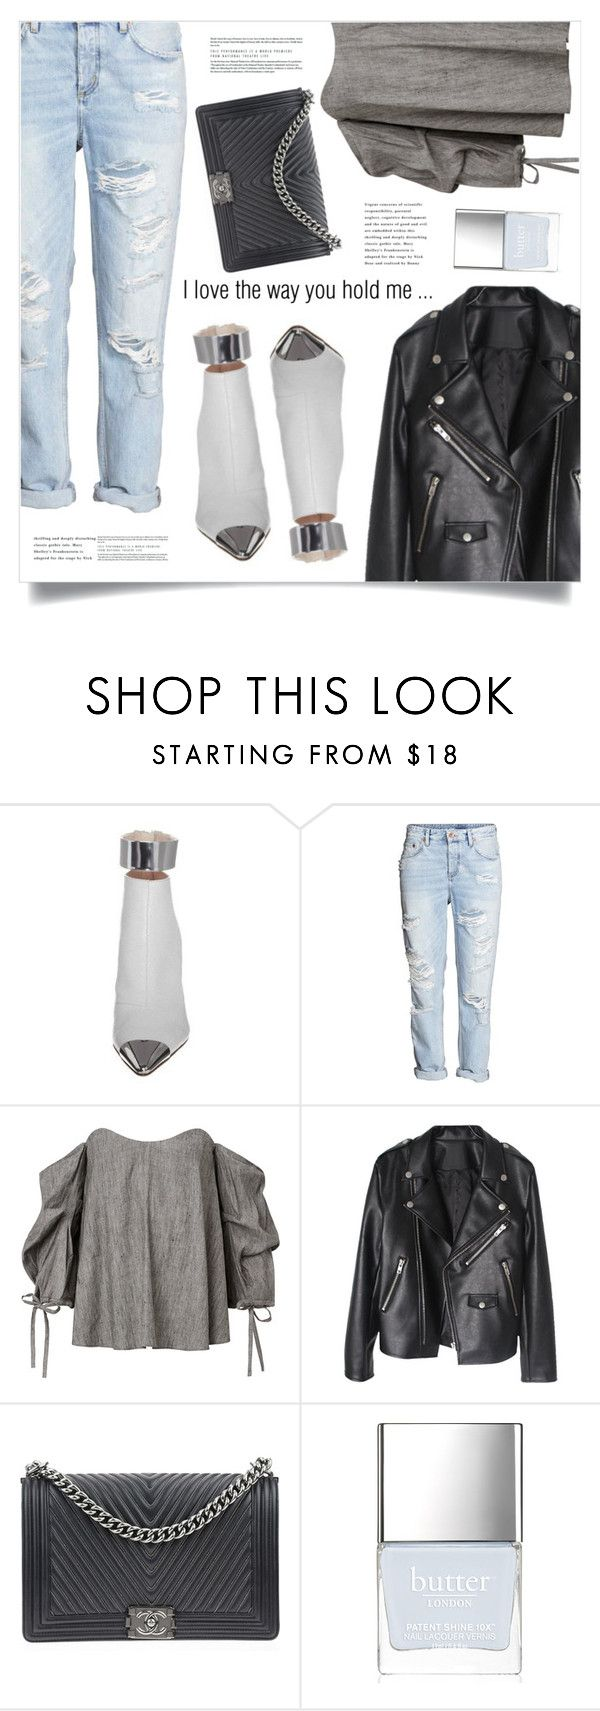 """Rainy Monday"" by marina-volaric ❤ liked on Polyvore featuring MICHALSKY, Chanel and Butter London"